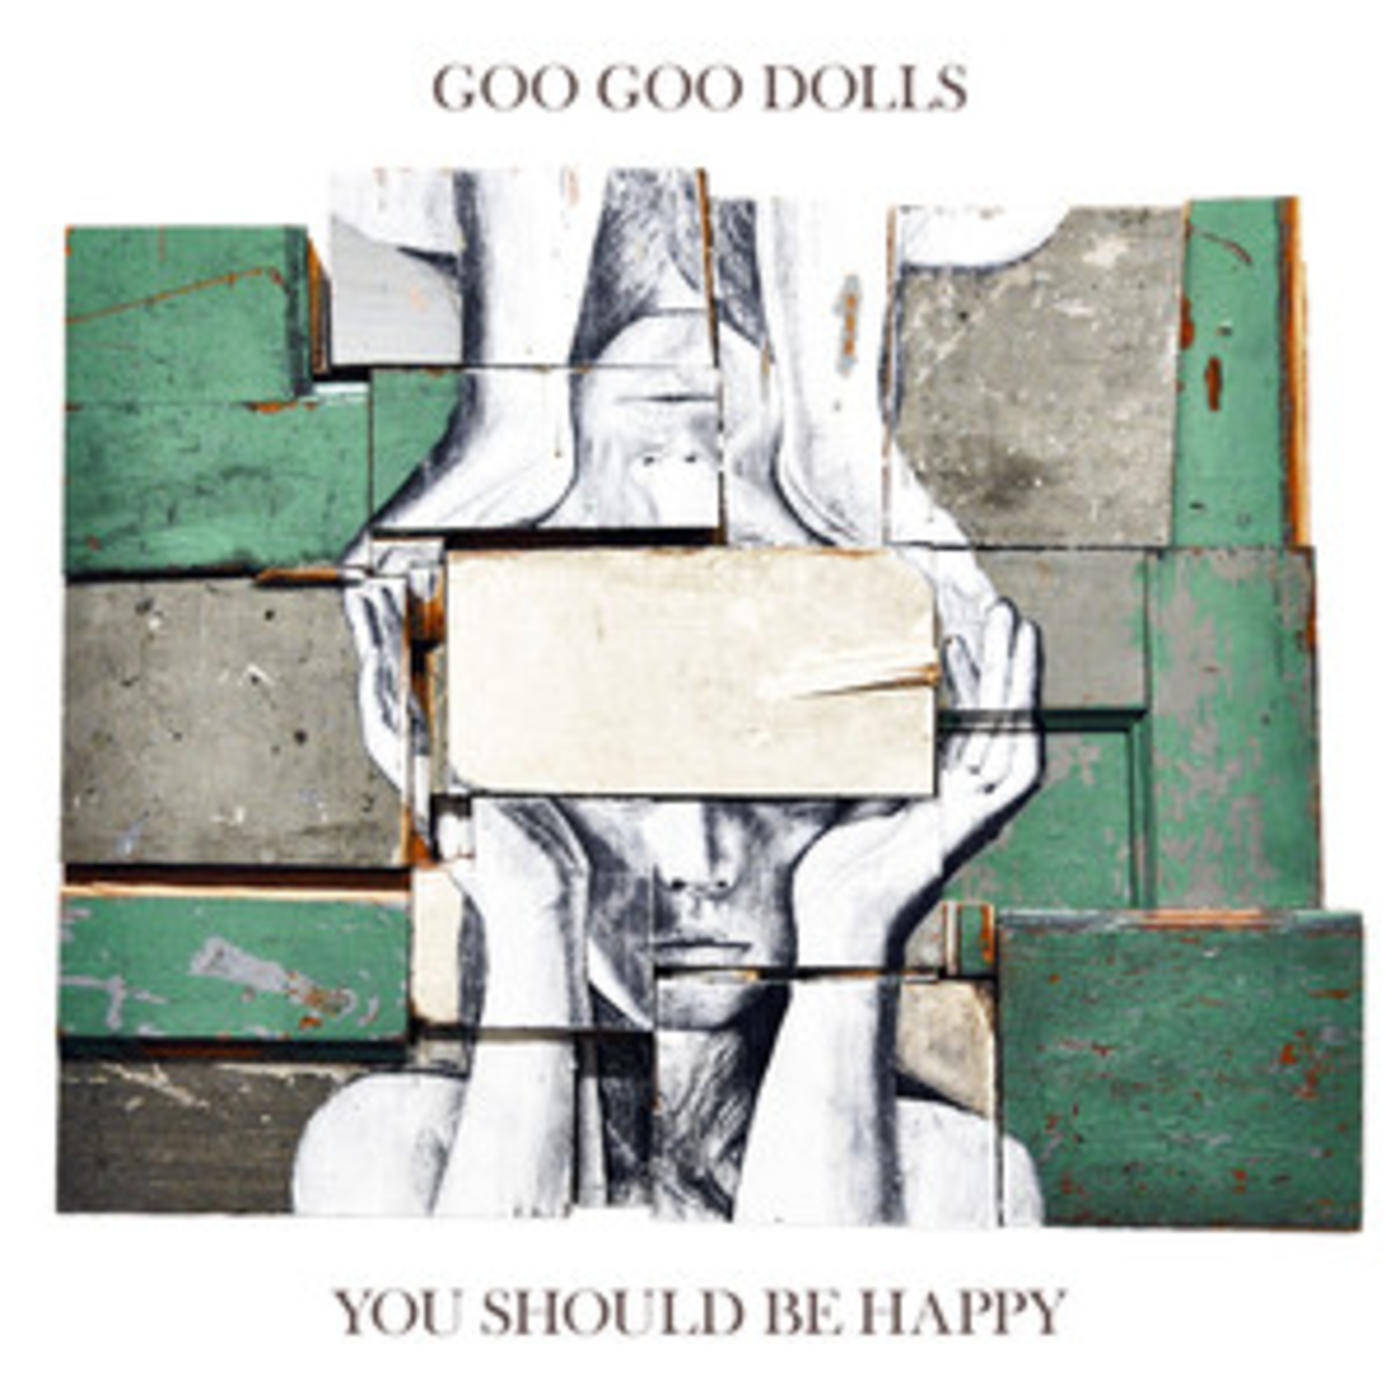 Goo Goo Dolls - 'You Should Be Happy' + Full Discography